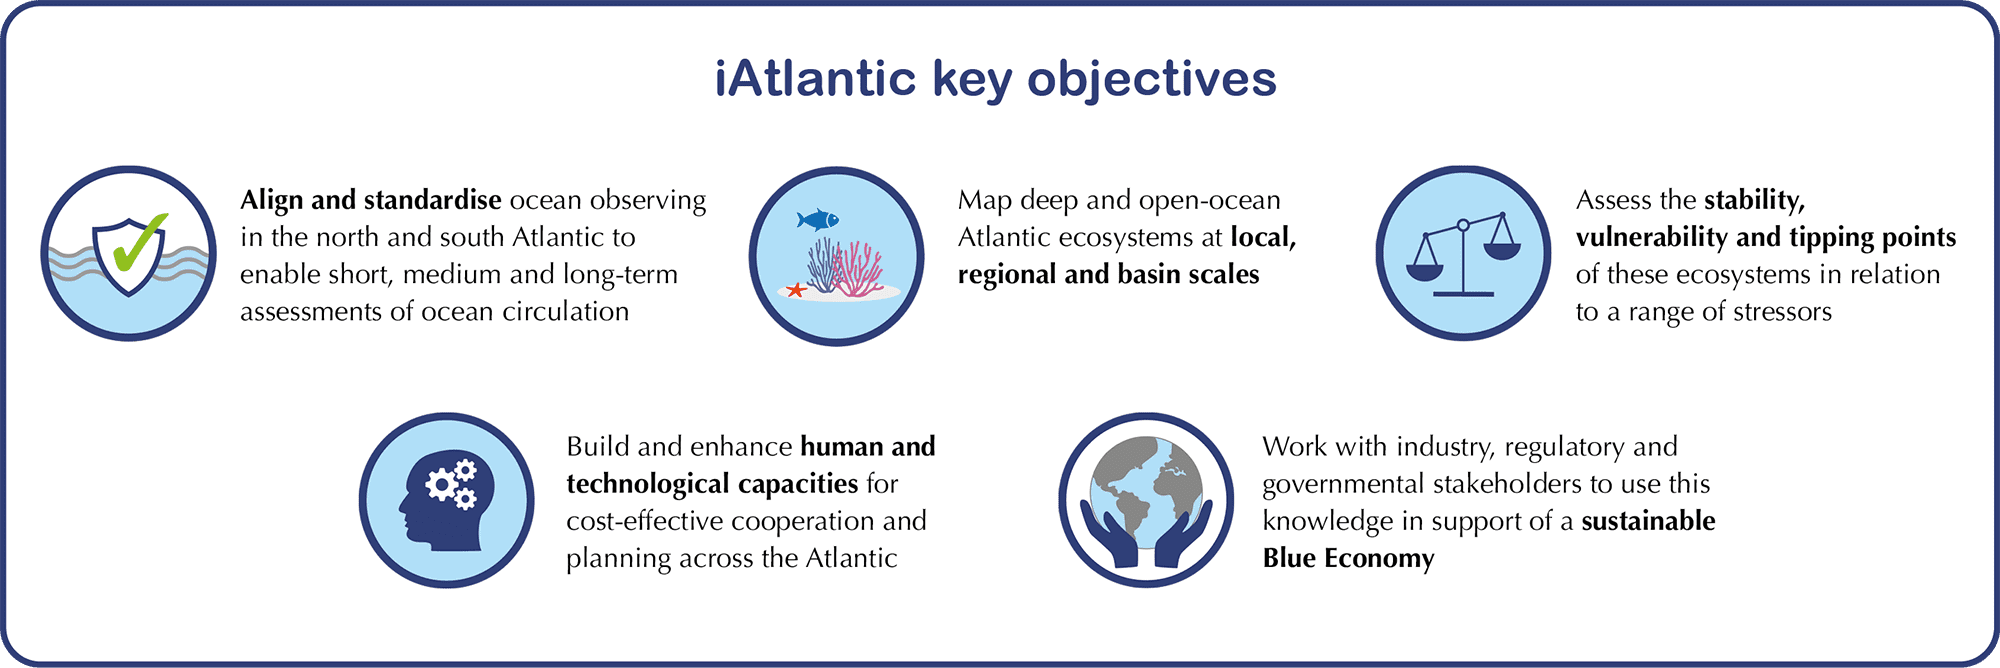 iAtlantic objectives